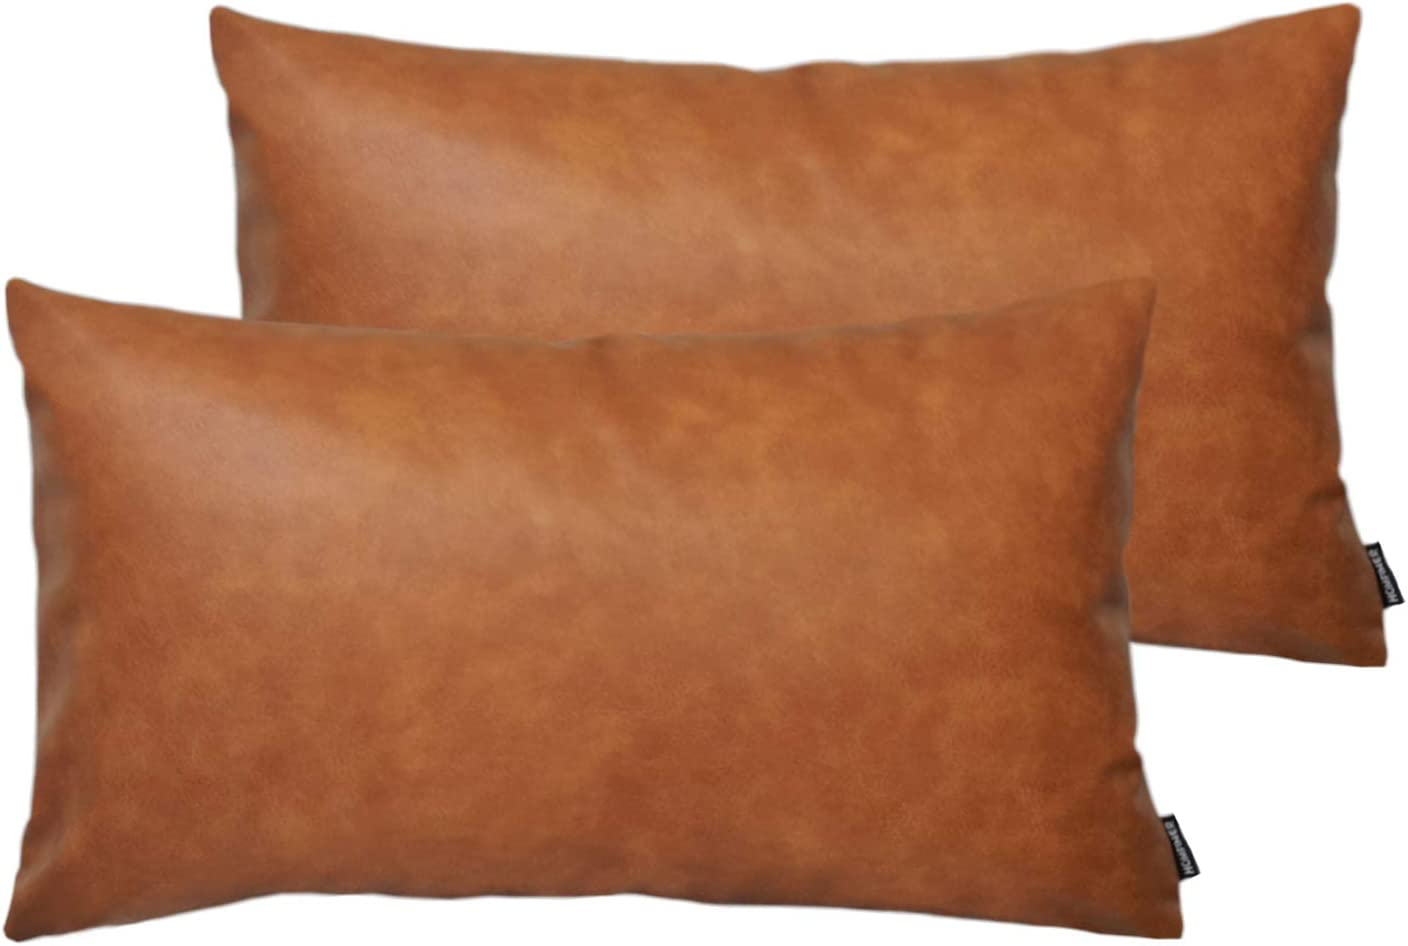 Amazon Com Homfiner Faux Leather Lumbar Throw Pillow Covers For Couch Bed Sofa Decorative 12x20 Set Of 2 Thick Modern Farmhouse Boho Small Long Accent Rectangle Scandinavian Decor Cushion Cases Cognac Brown Home